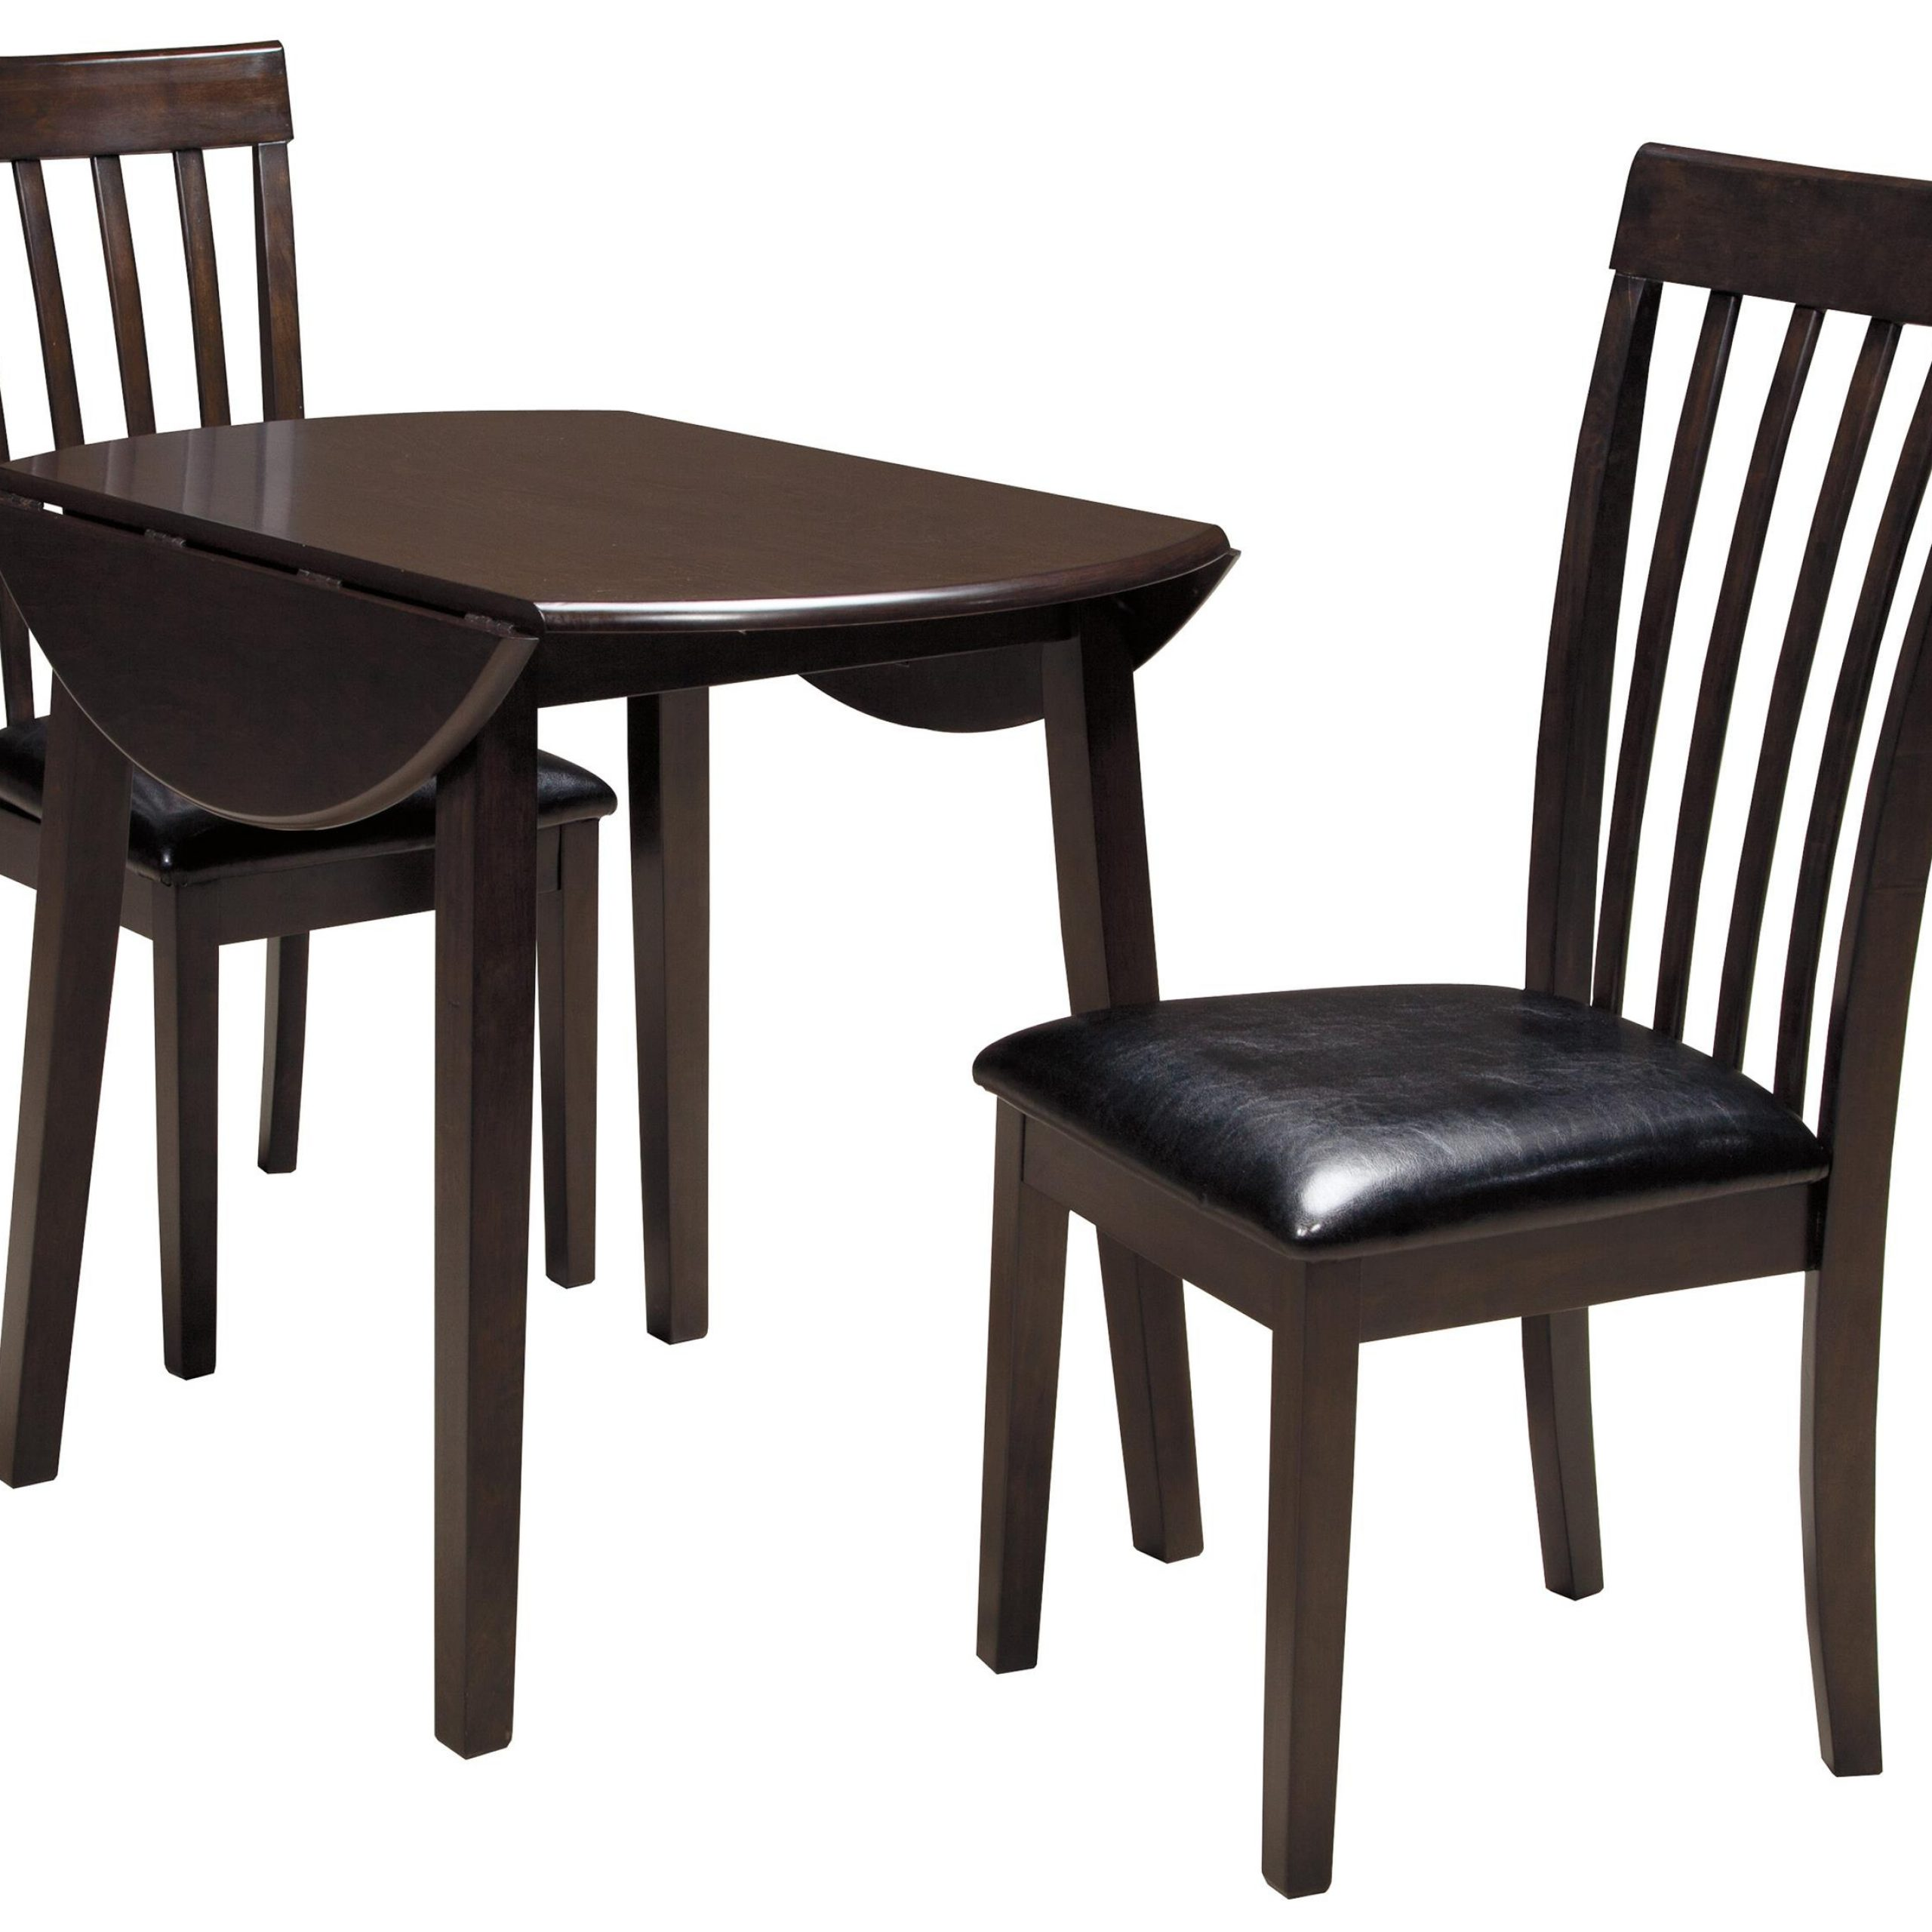 Popular Transitional 3 Piece Drop Leaf Casual Dining Tables Set Throughout Hammis 3 Piece Round Drop Leaf Table Set (View 2 of 25)